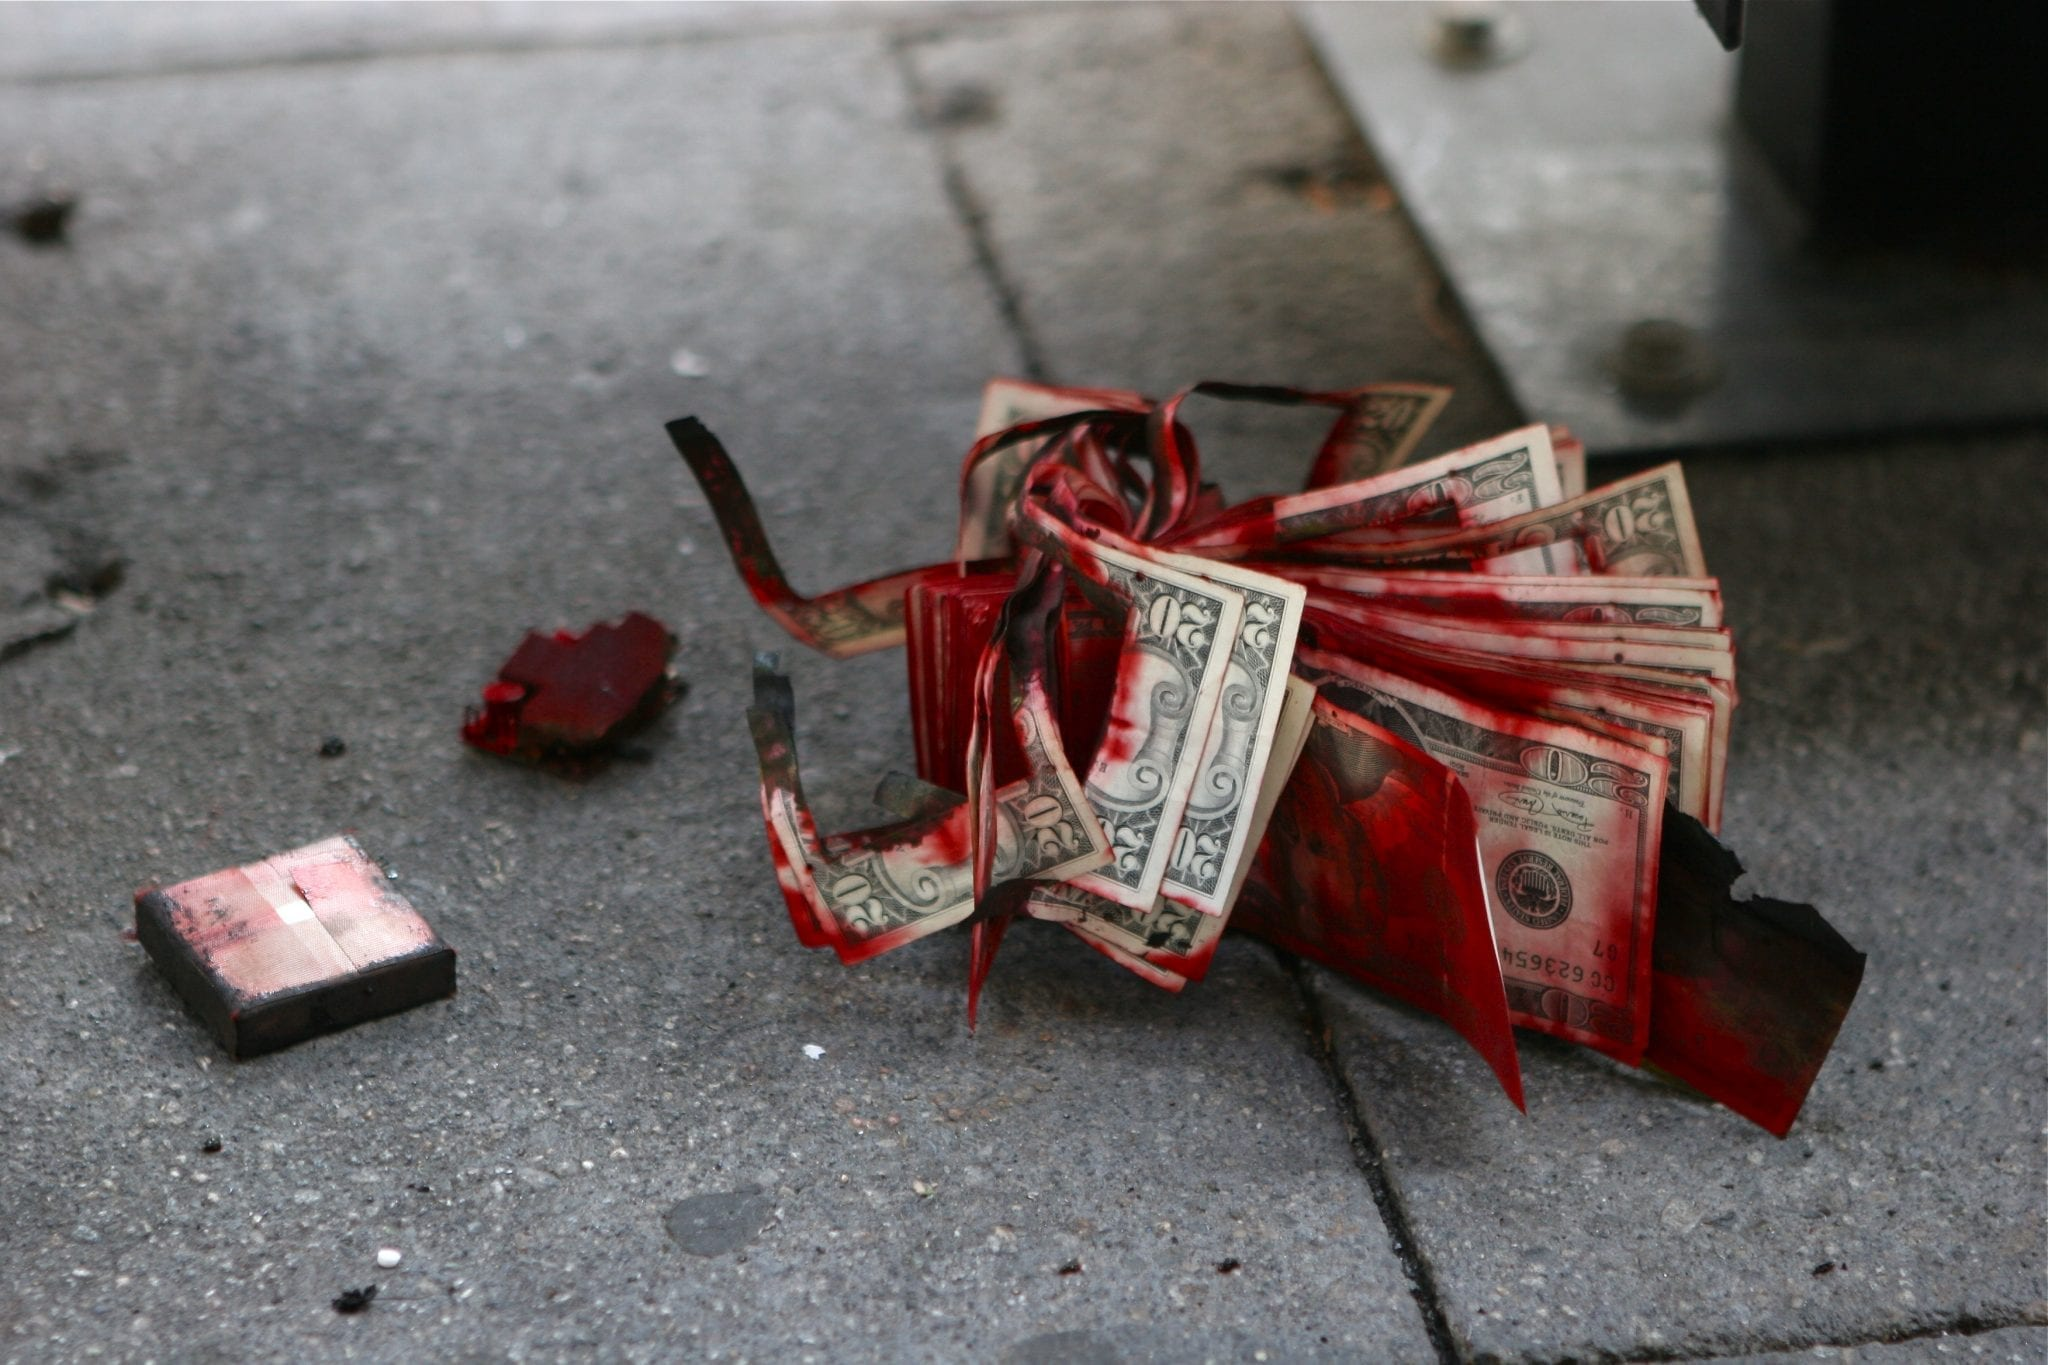 Aftermath of a Bank of America robbery. The dye pack exploded and the stack of 20s were abandoned on the sidewalk. Image by Colin Brown, CC BY 2.0, via Wikimedia Commons, no changes.